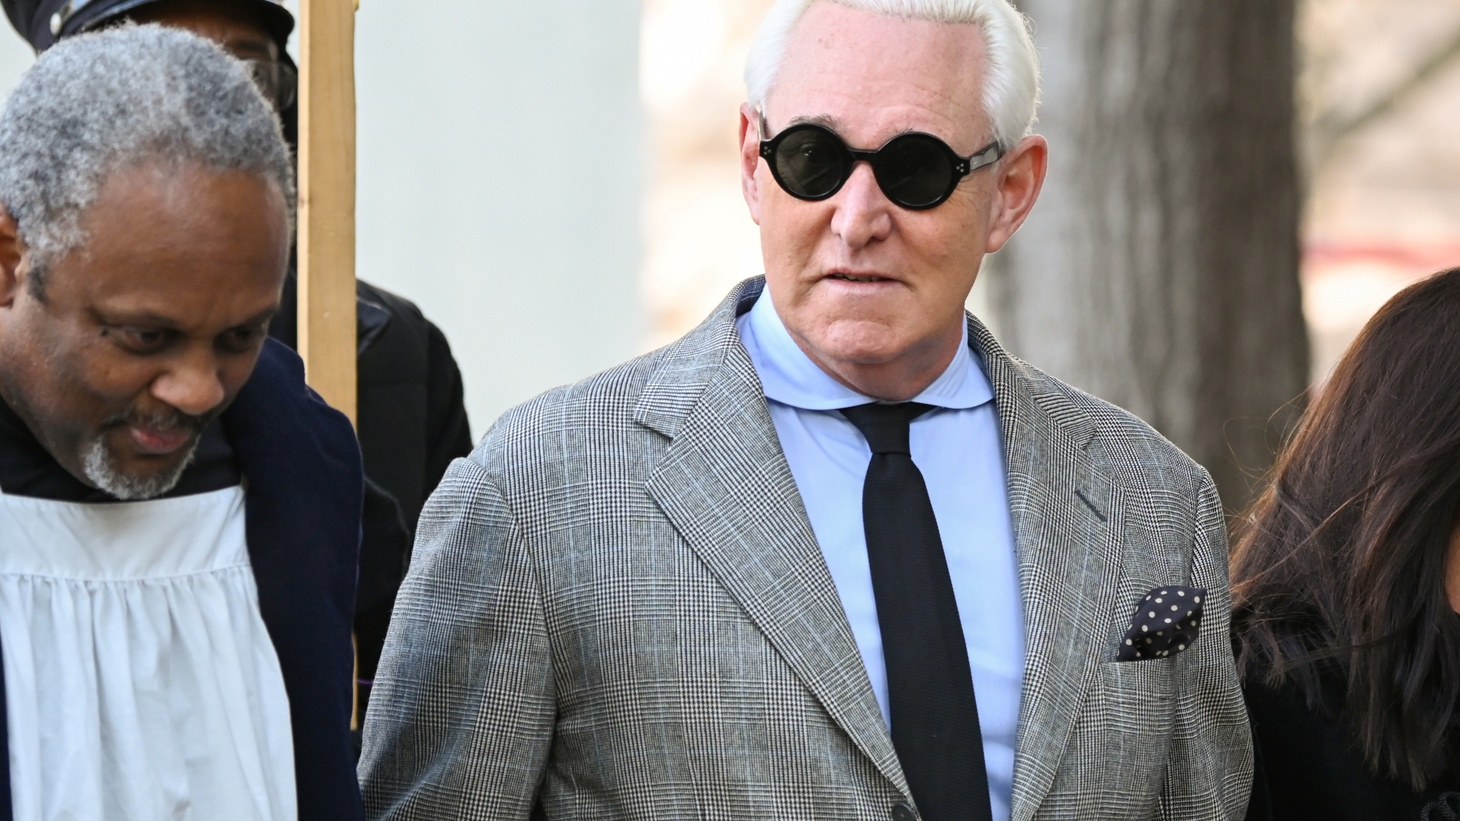 Former Trump campaign adviser Roger Stone, joined by other witnesses, arrives for his criminal trial on charges of lying to Congress, obstructing official proceeding and witness tampering at the U.S. District court in Washington, U.S. November 14, 2019.